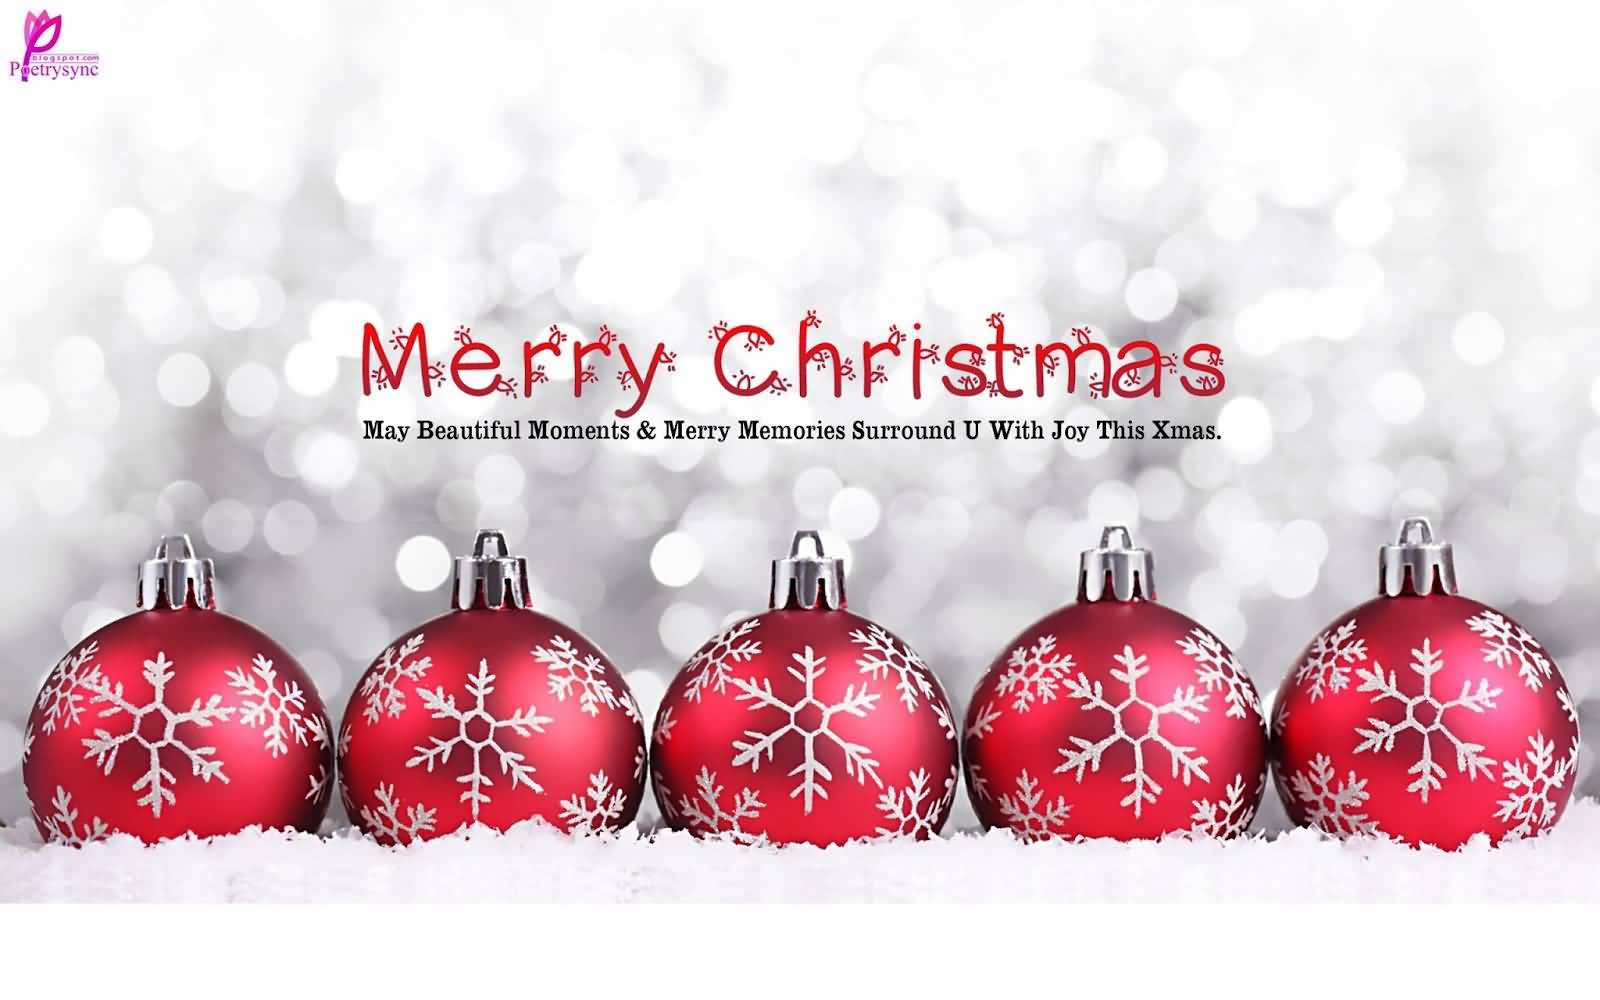 Merry Christmas May Beautiful Moments & Merry Memories Surround You ...